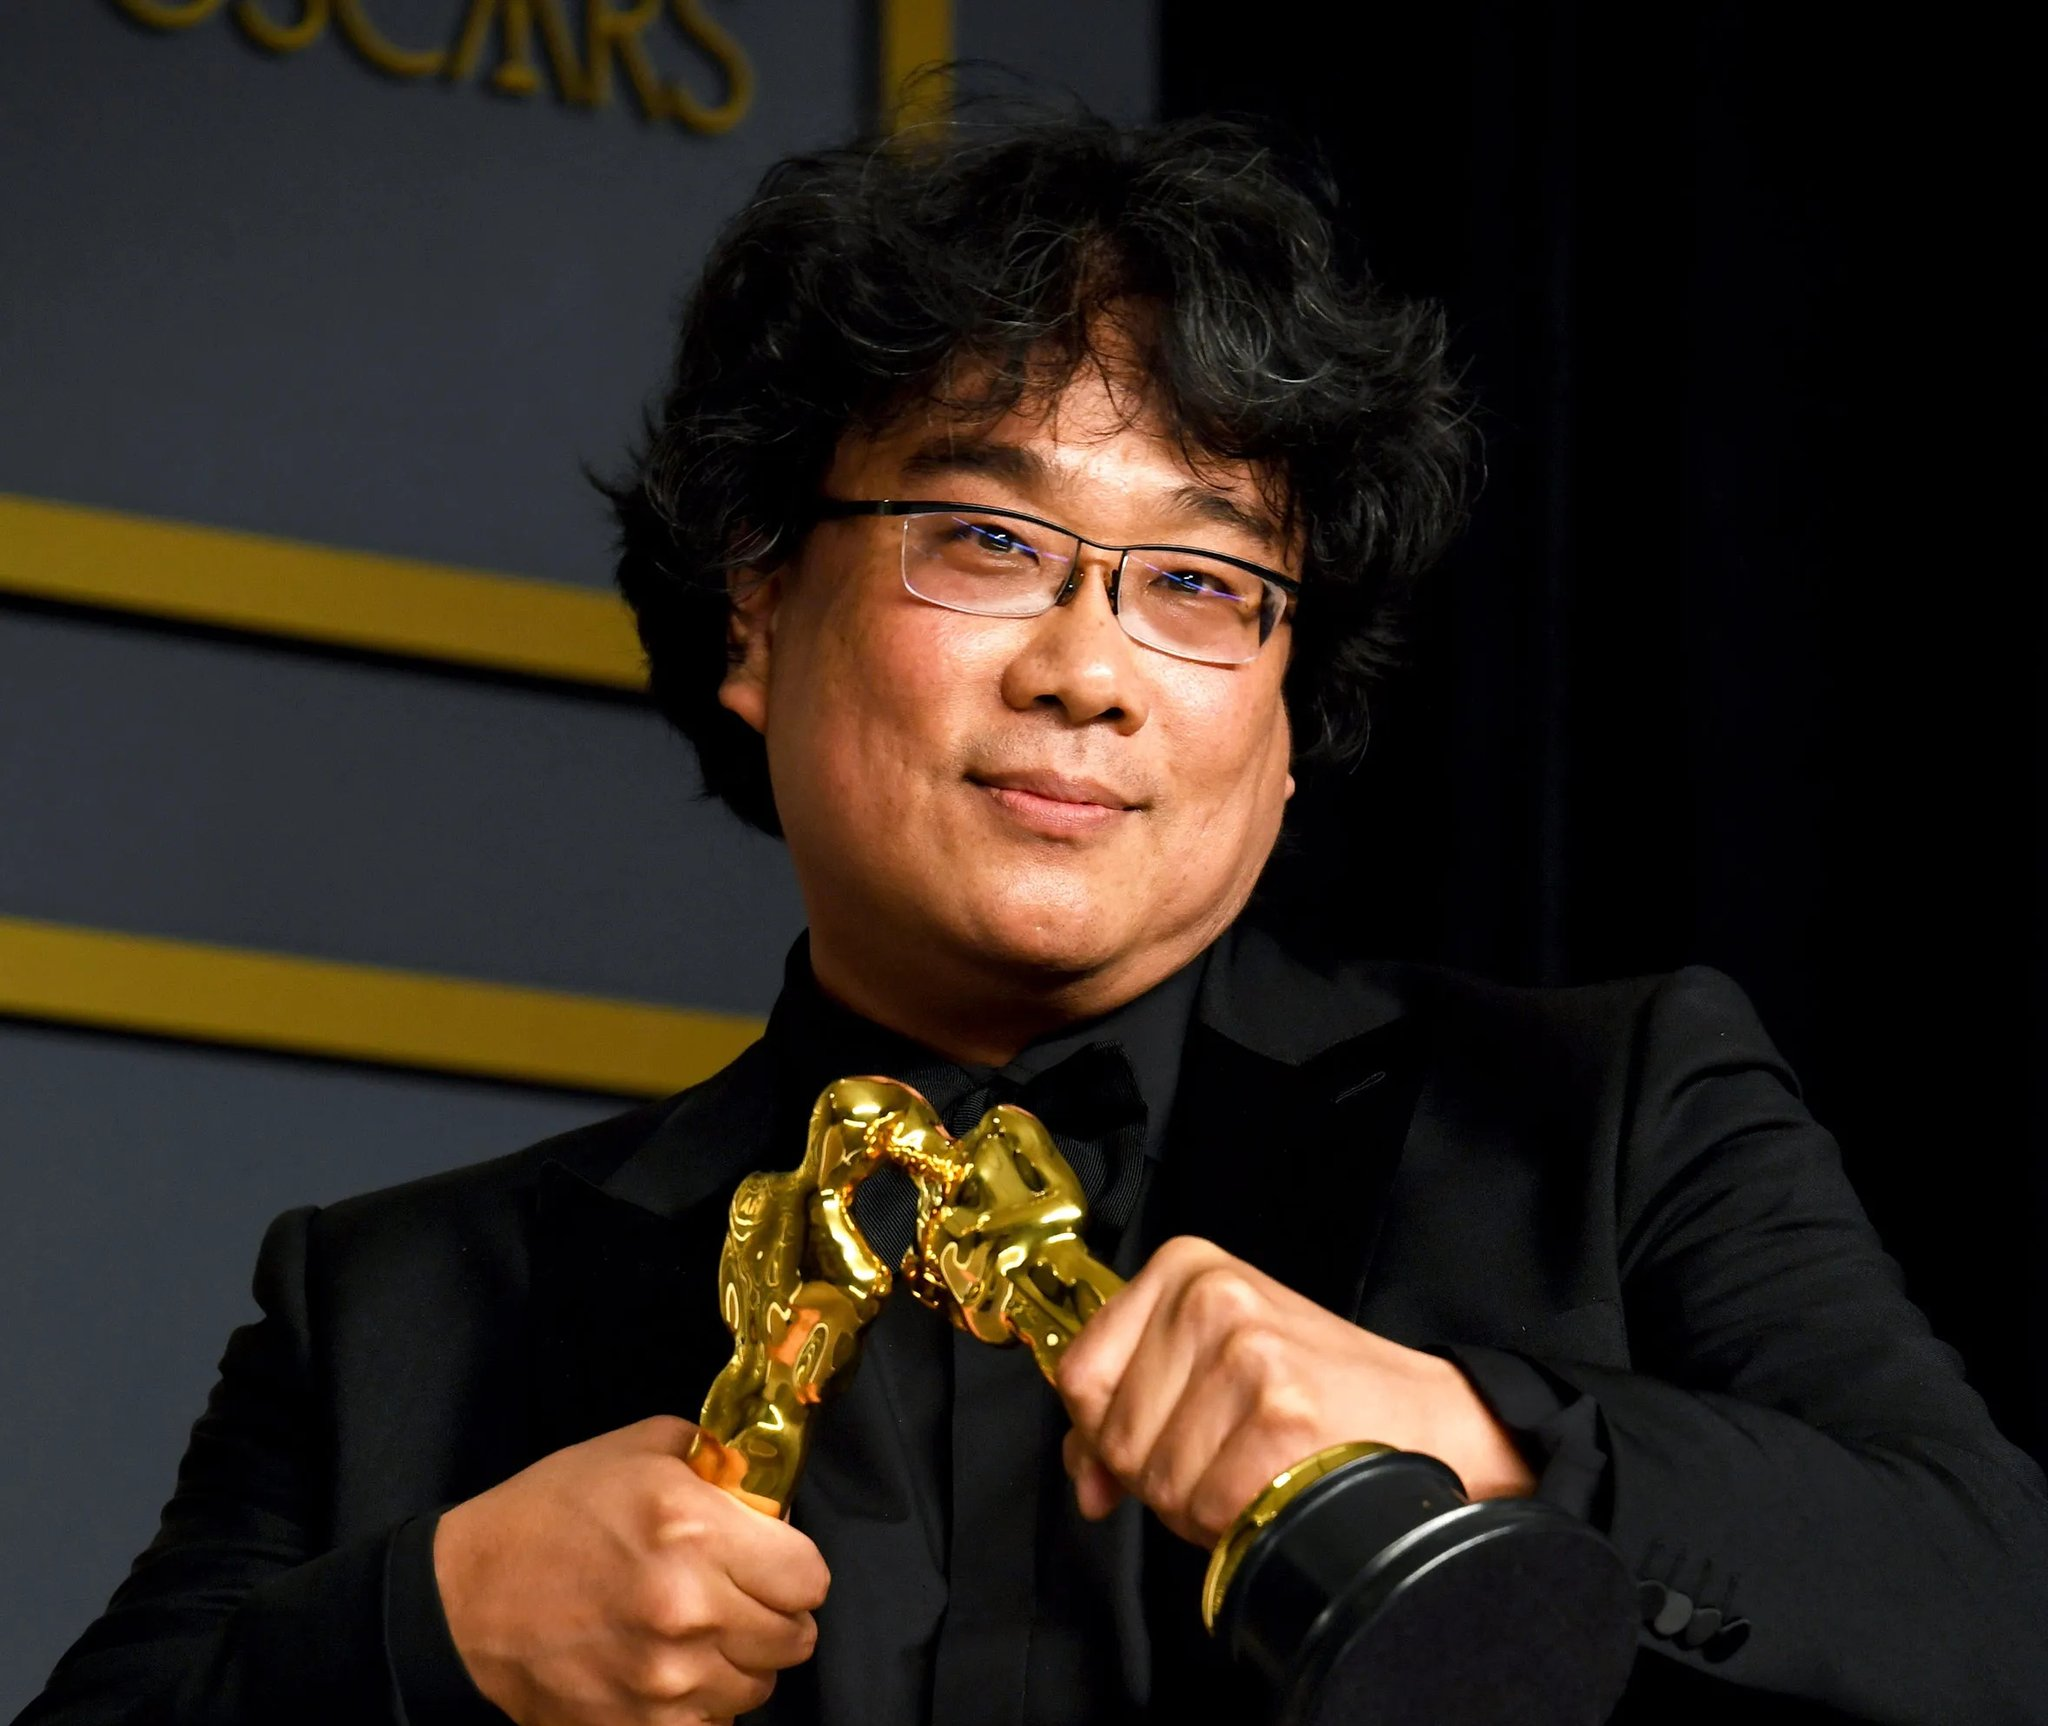 Happy birthday to my favourite director, a constant inspiration and an all time great. Bong Joon-ho.